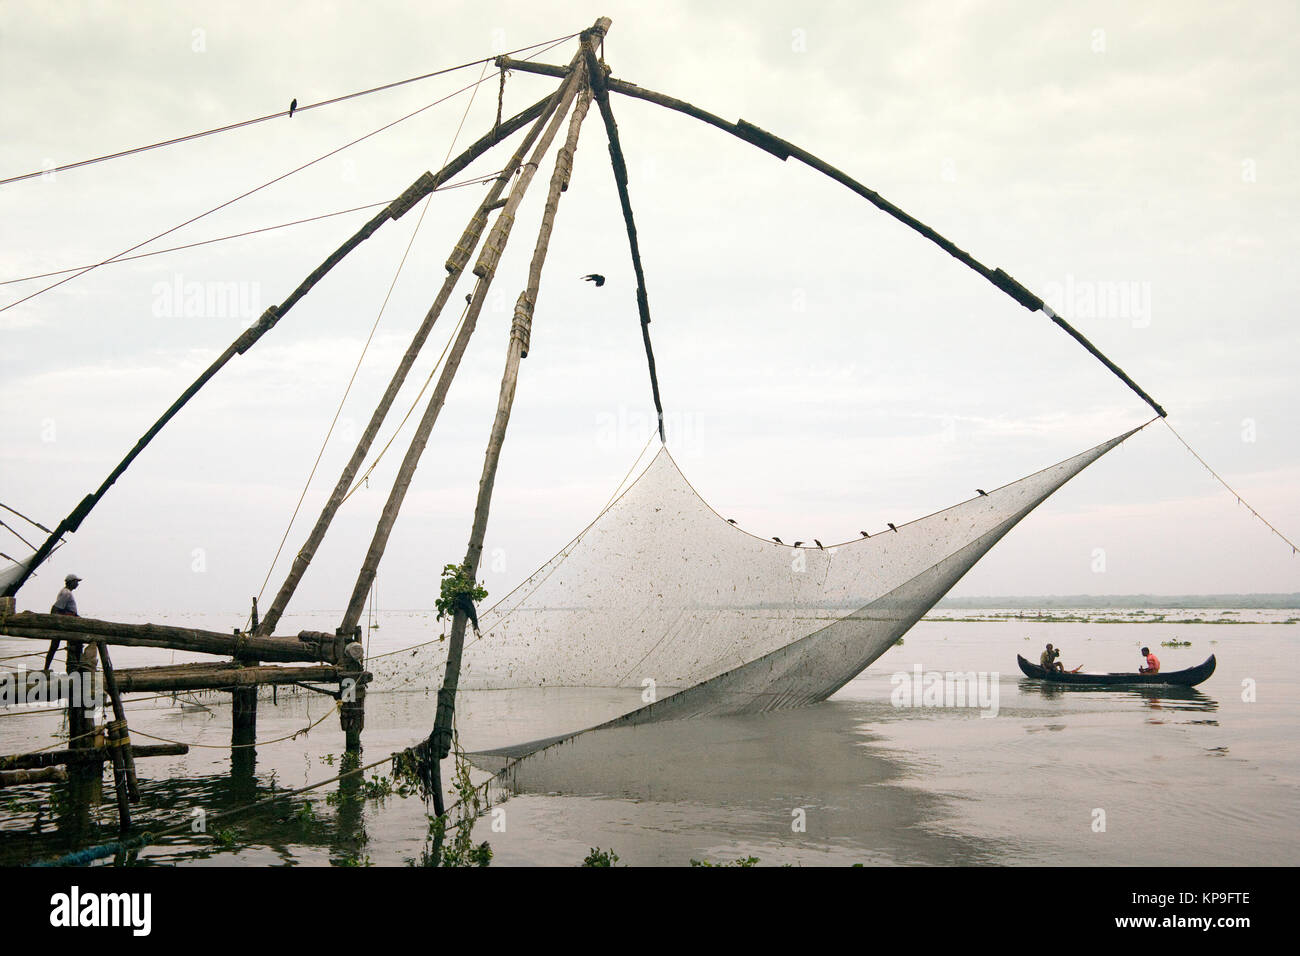 Chinese Fishing nets at Kochi in the Kerala region of southern India. Chinese fishing nets are fixed land installations - Stock Image